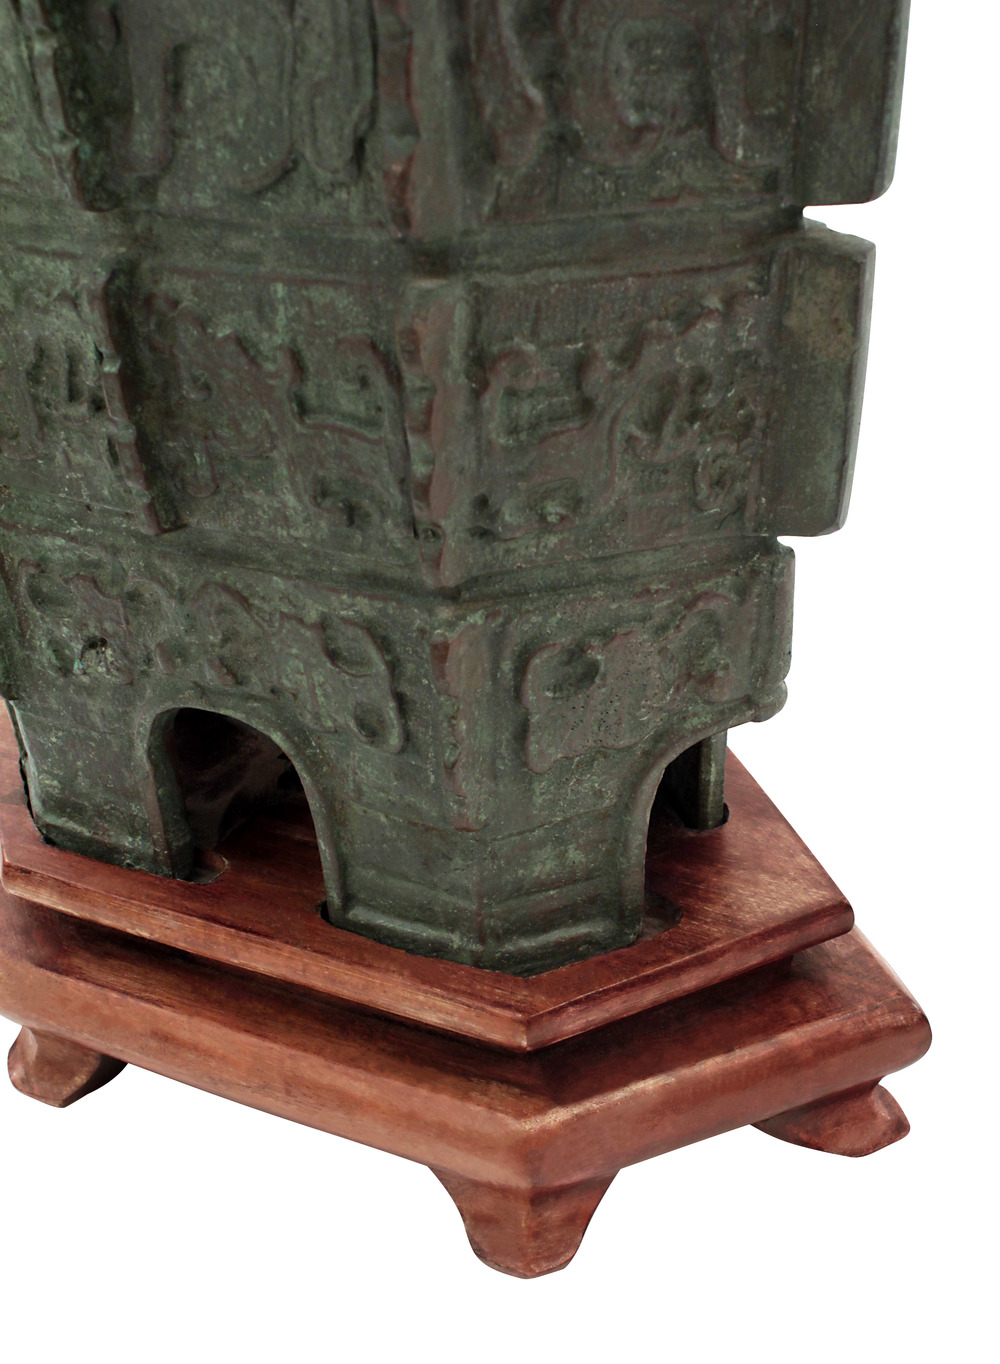 40's 55 Chinese bronze urns tablelamps318 detai3 hires.jpg